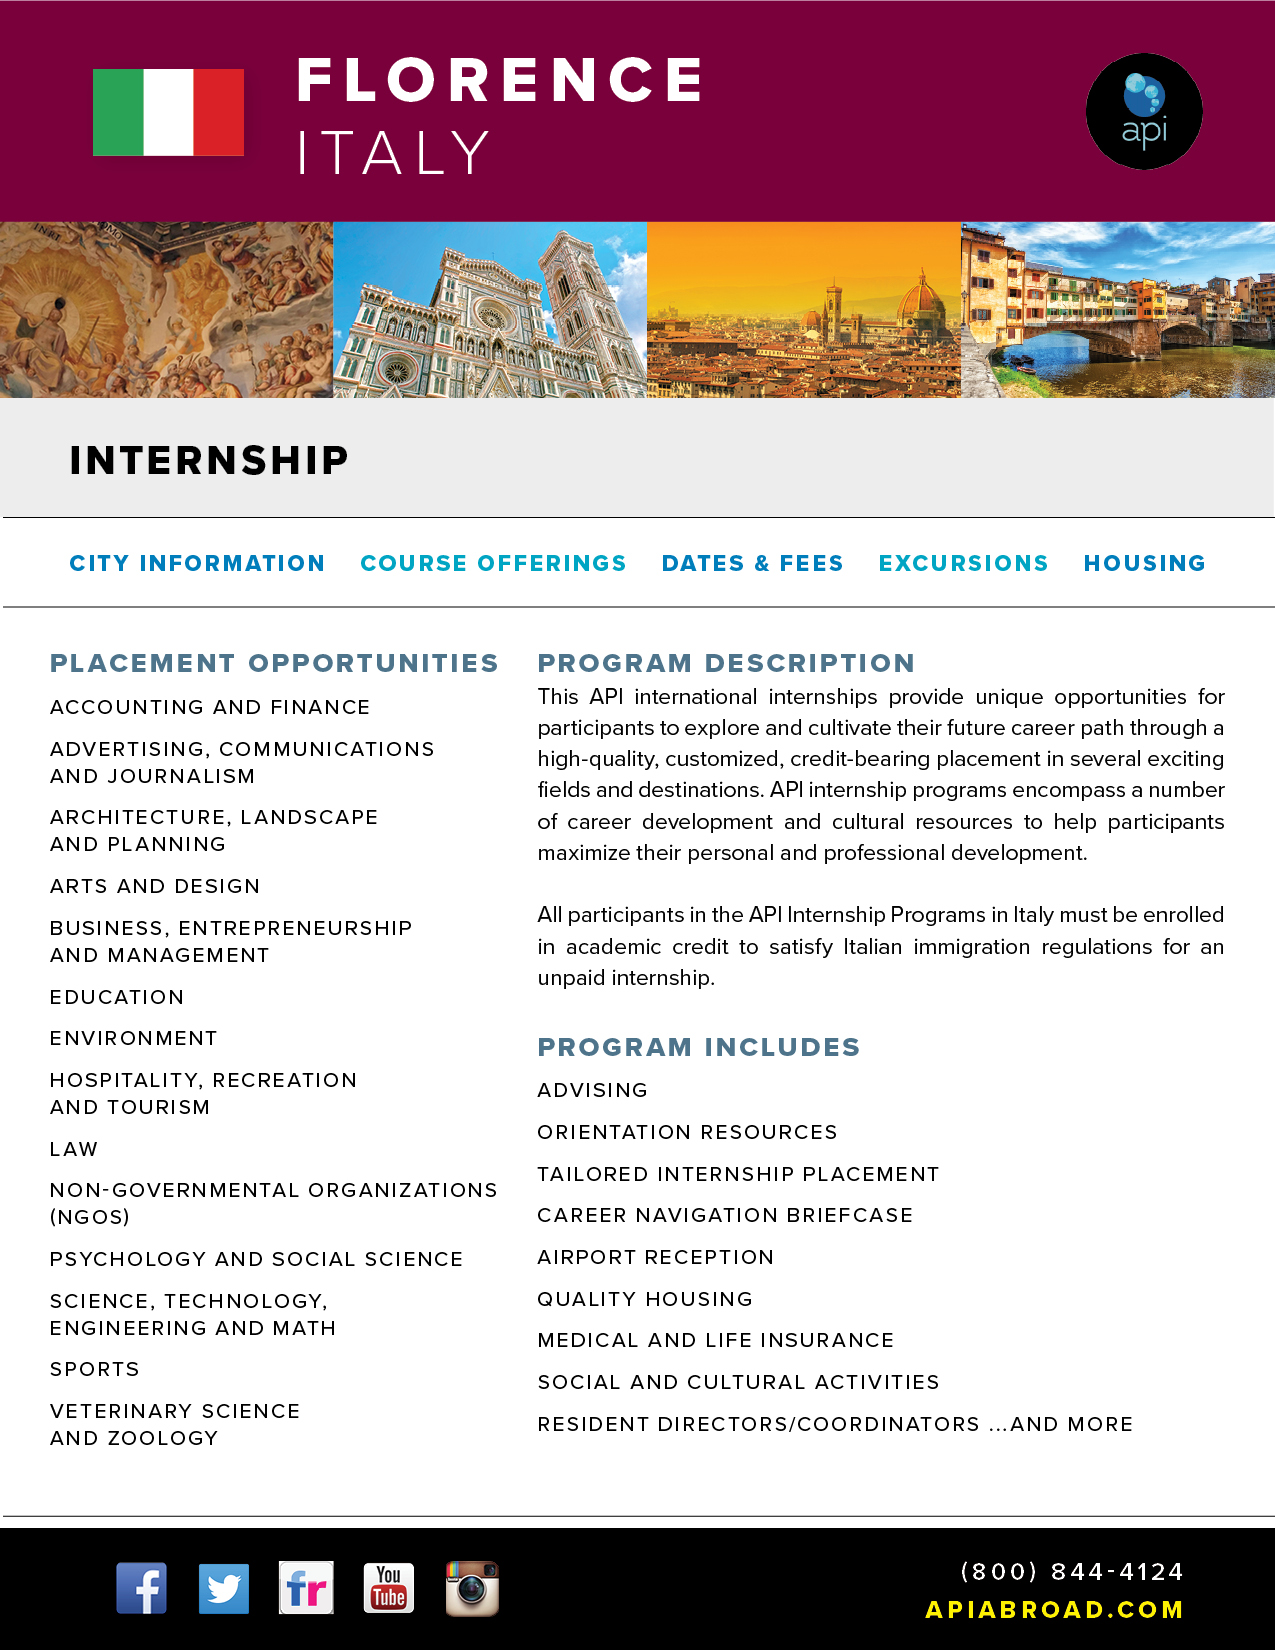 API Internship in Italy